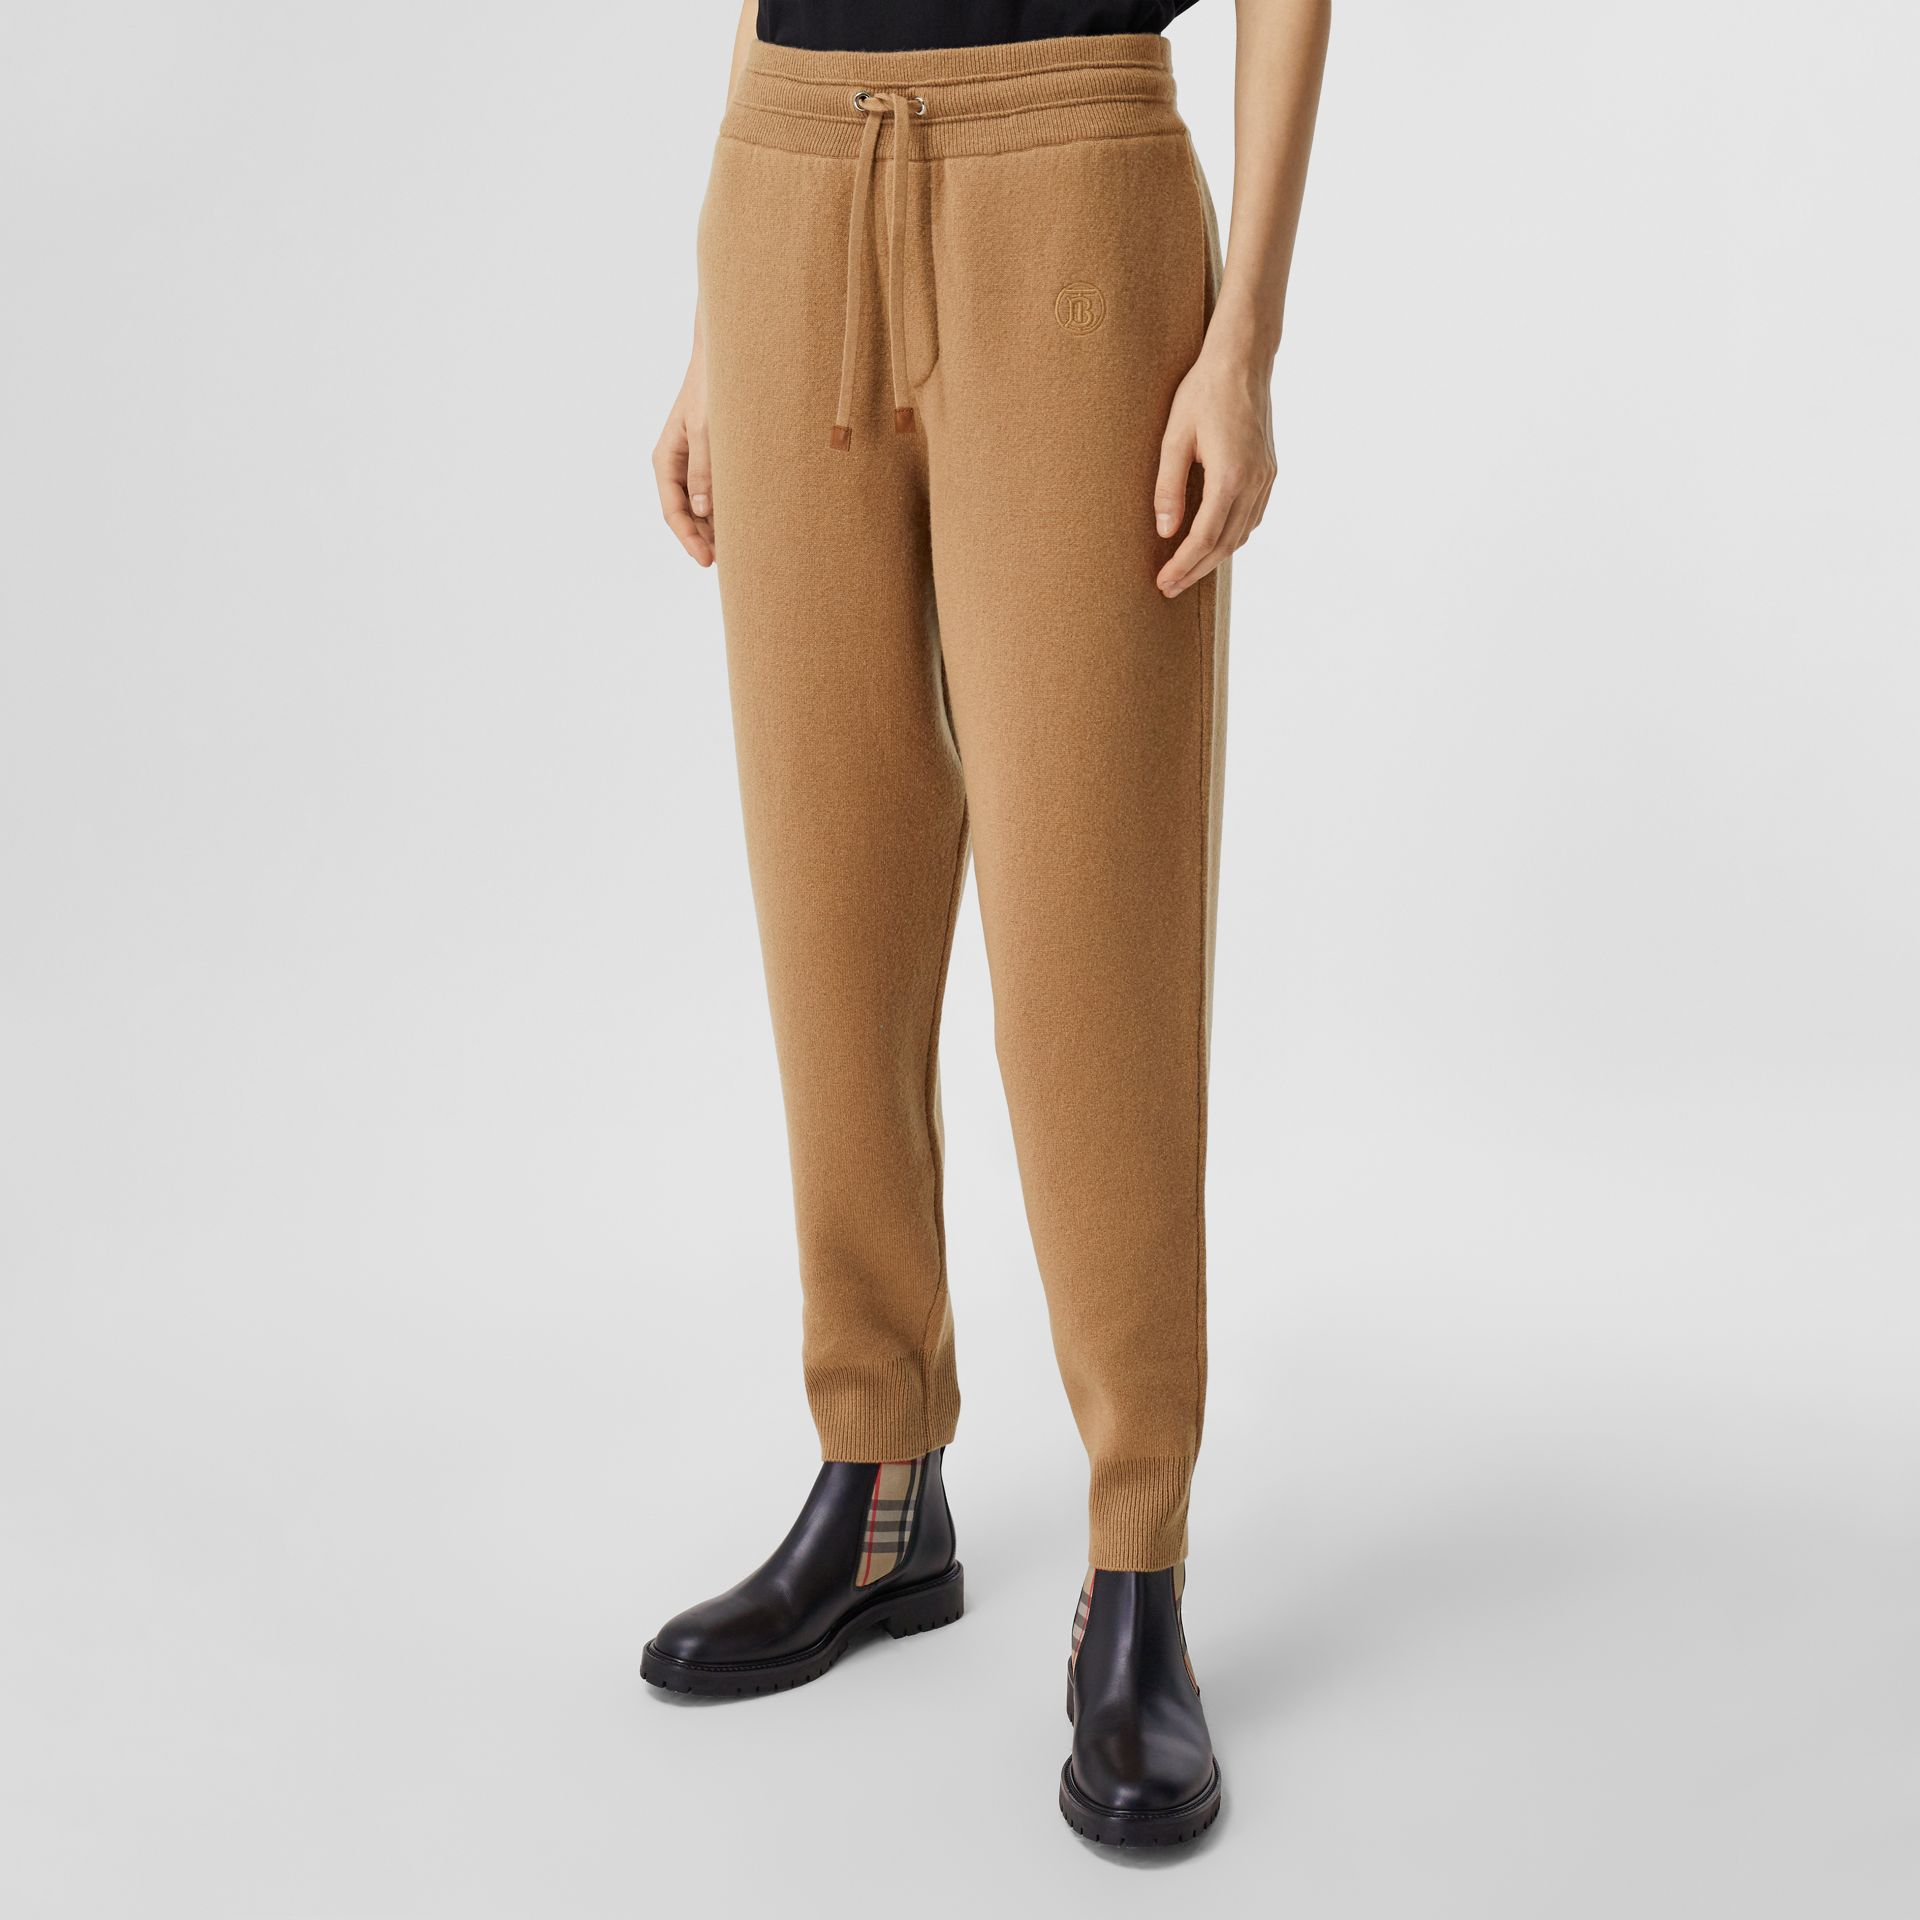 Monogram Motif Cashmere Blend Jogging Pants in Camel - Women | Burberry - gallery image 4